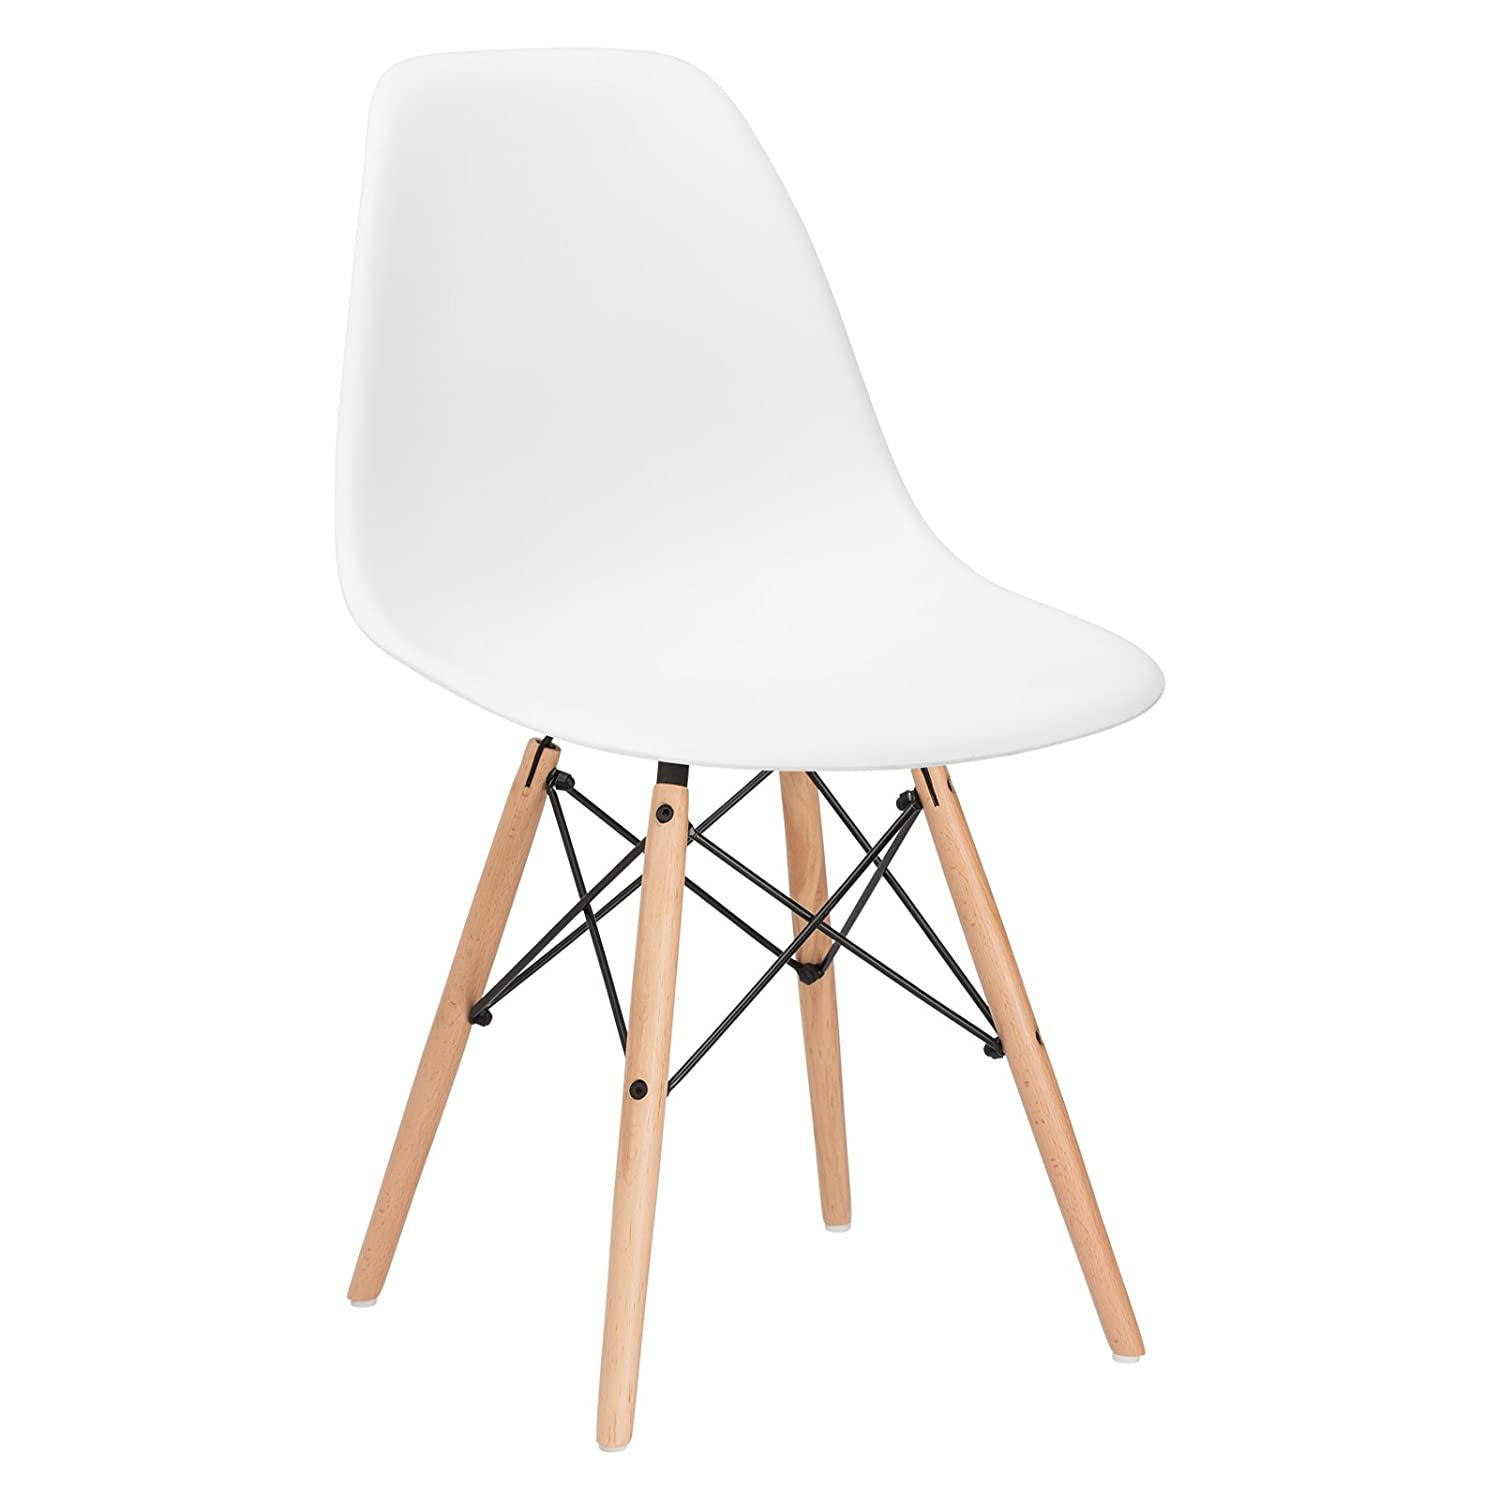 Eames chair white plastic - Amazon Com Poly And Bark Eames Style Molded Plastic Dowel Leg Side Chair Dsw Natural Legs Set Of 2 Kitchen Dining